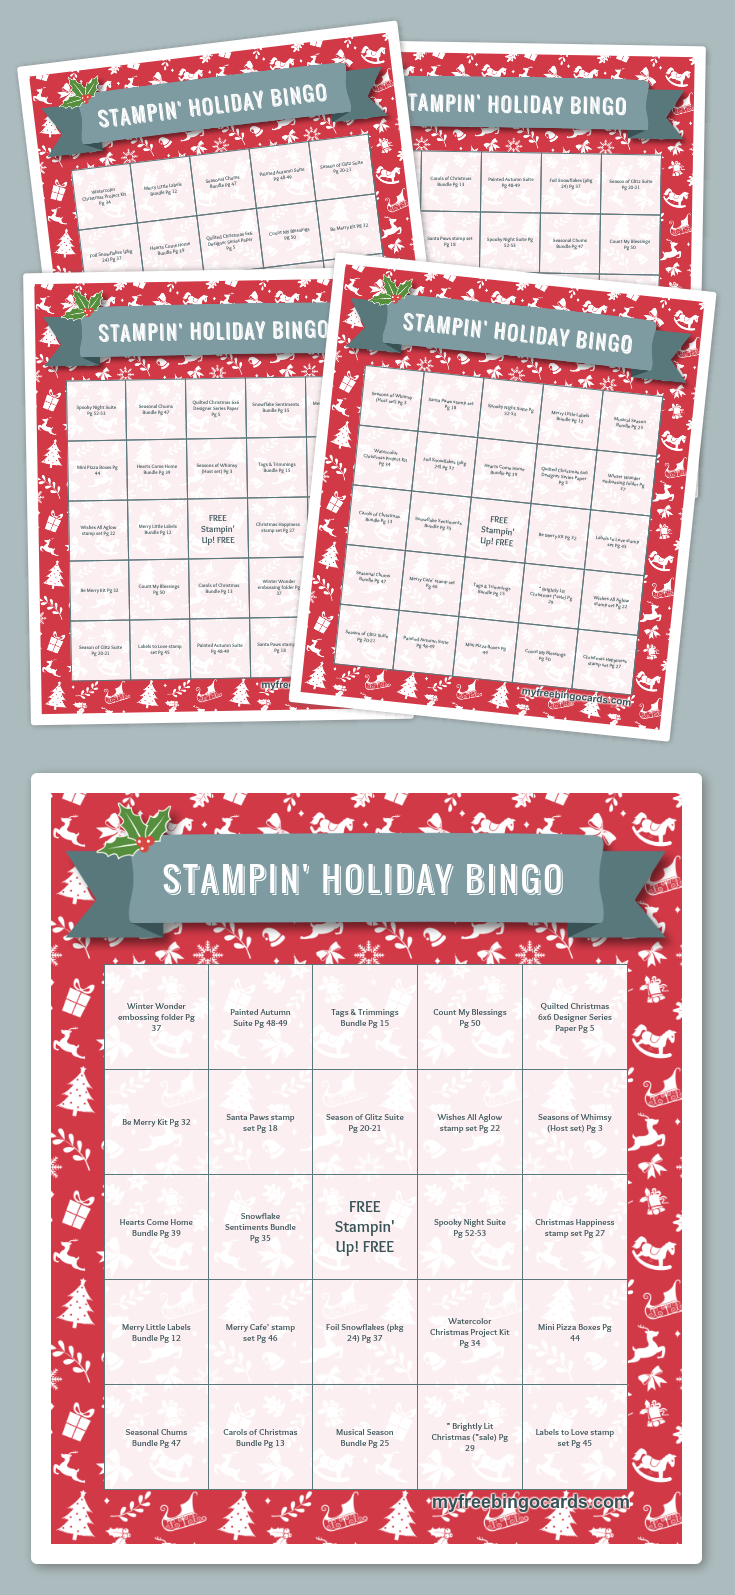 picture about Holiday Bingo Printable titled Stampin Getaway BINGO 2017 Family vacation Catalog (30 totally free playing cards